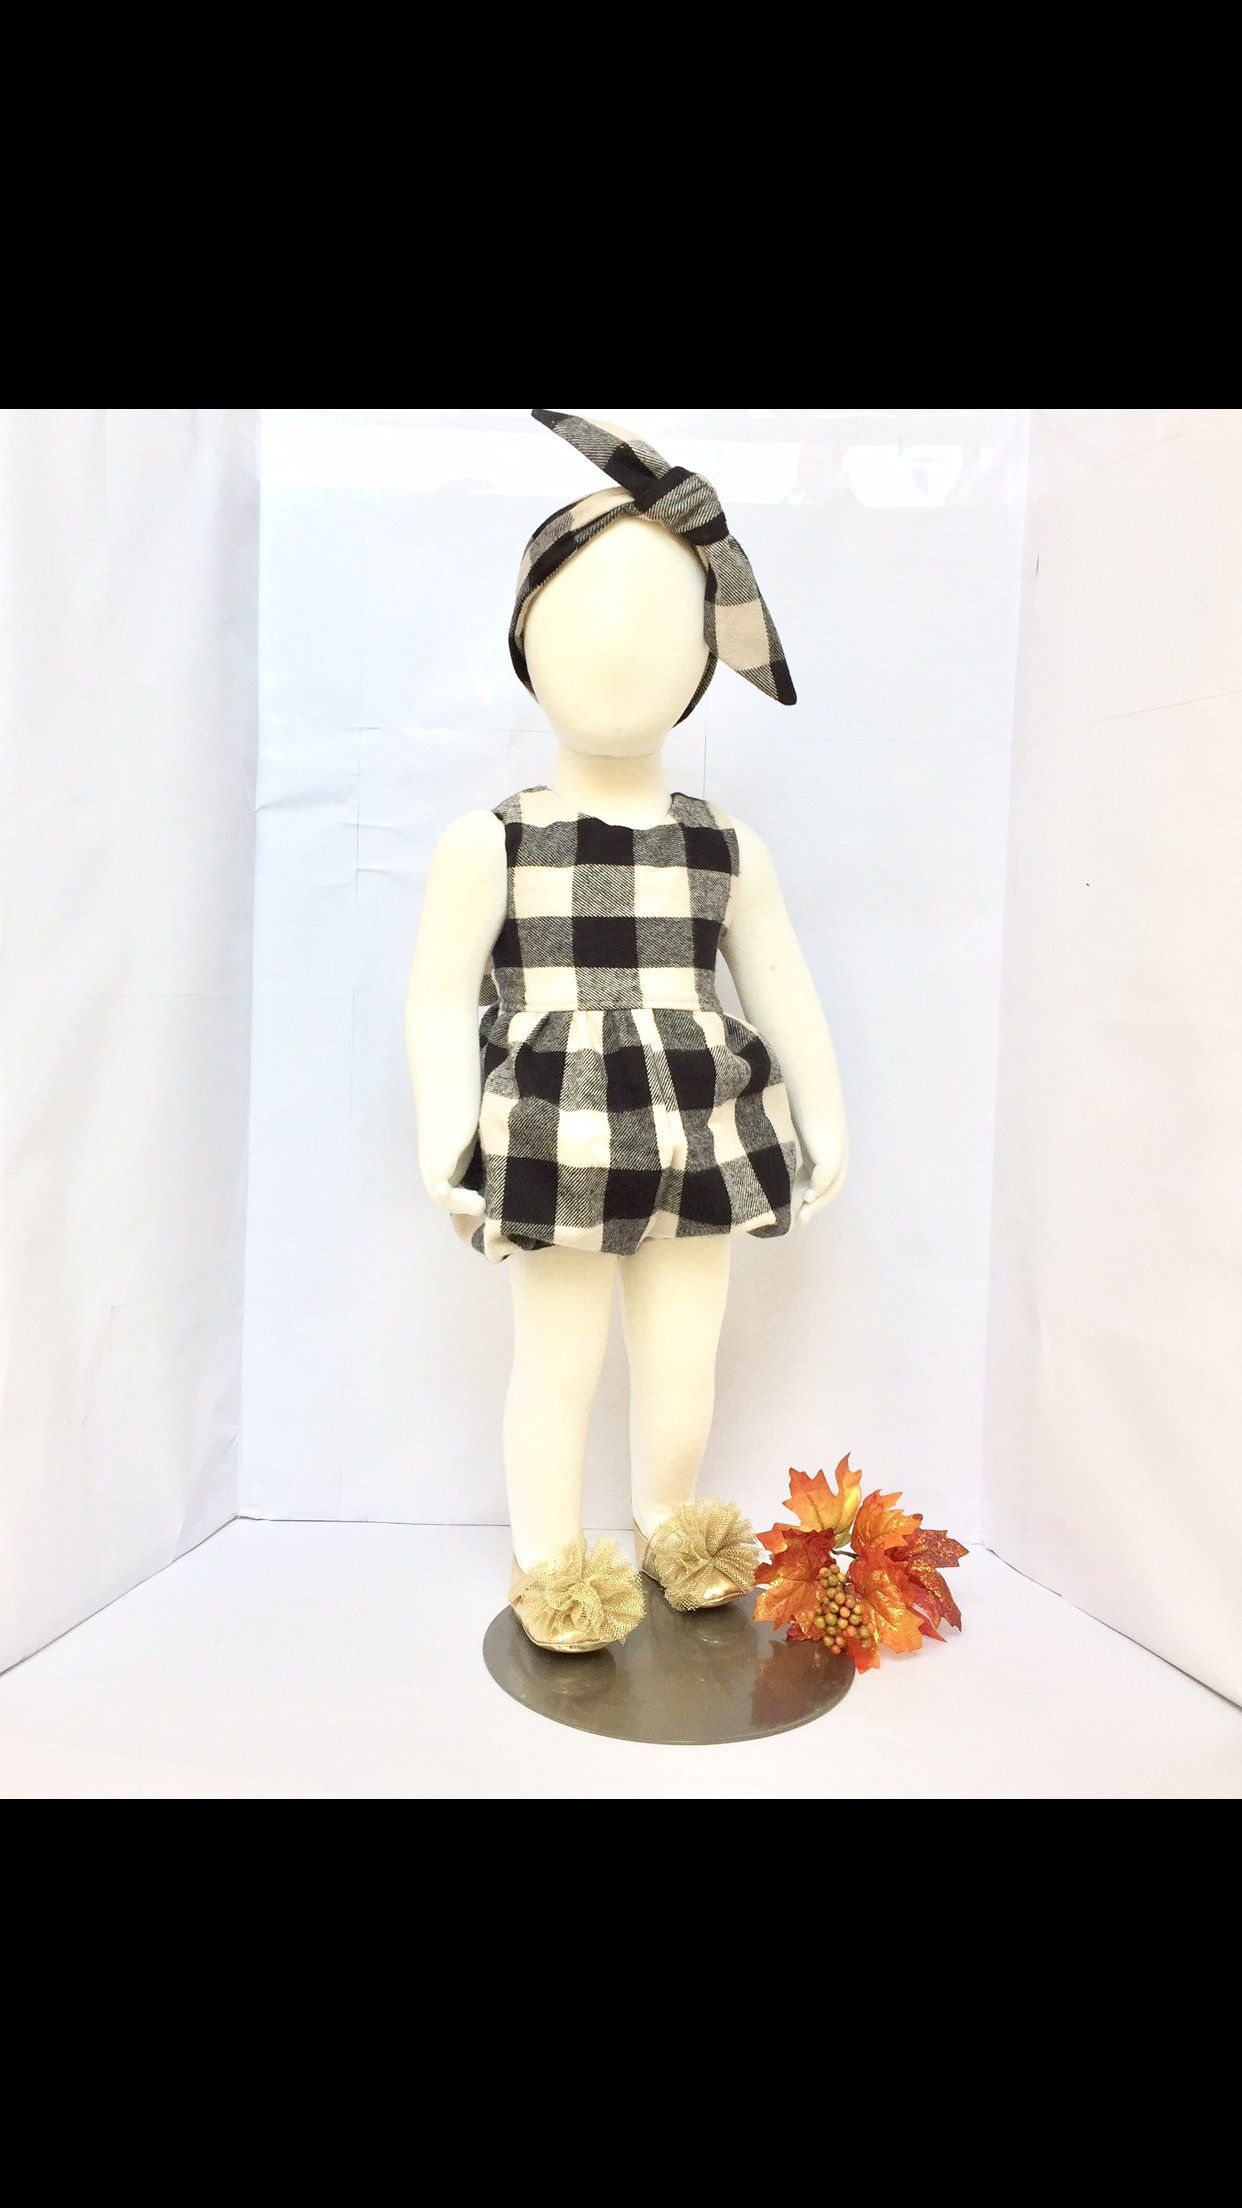 878910adcf5f Buffalo Check toodler  girls romper  Thanksgiving dress  Holiday romper  Girls  romper  Buffalo Plaid dress  Thanksgiving outfit by PlayTogs on Etsy